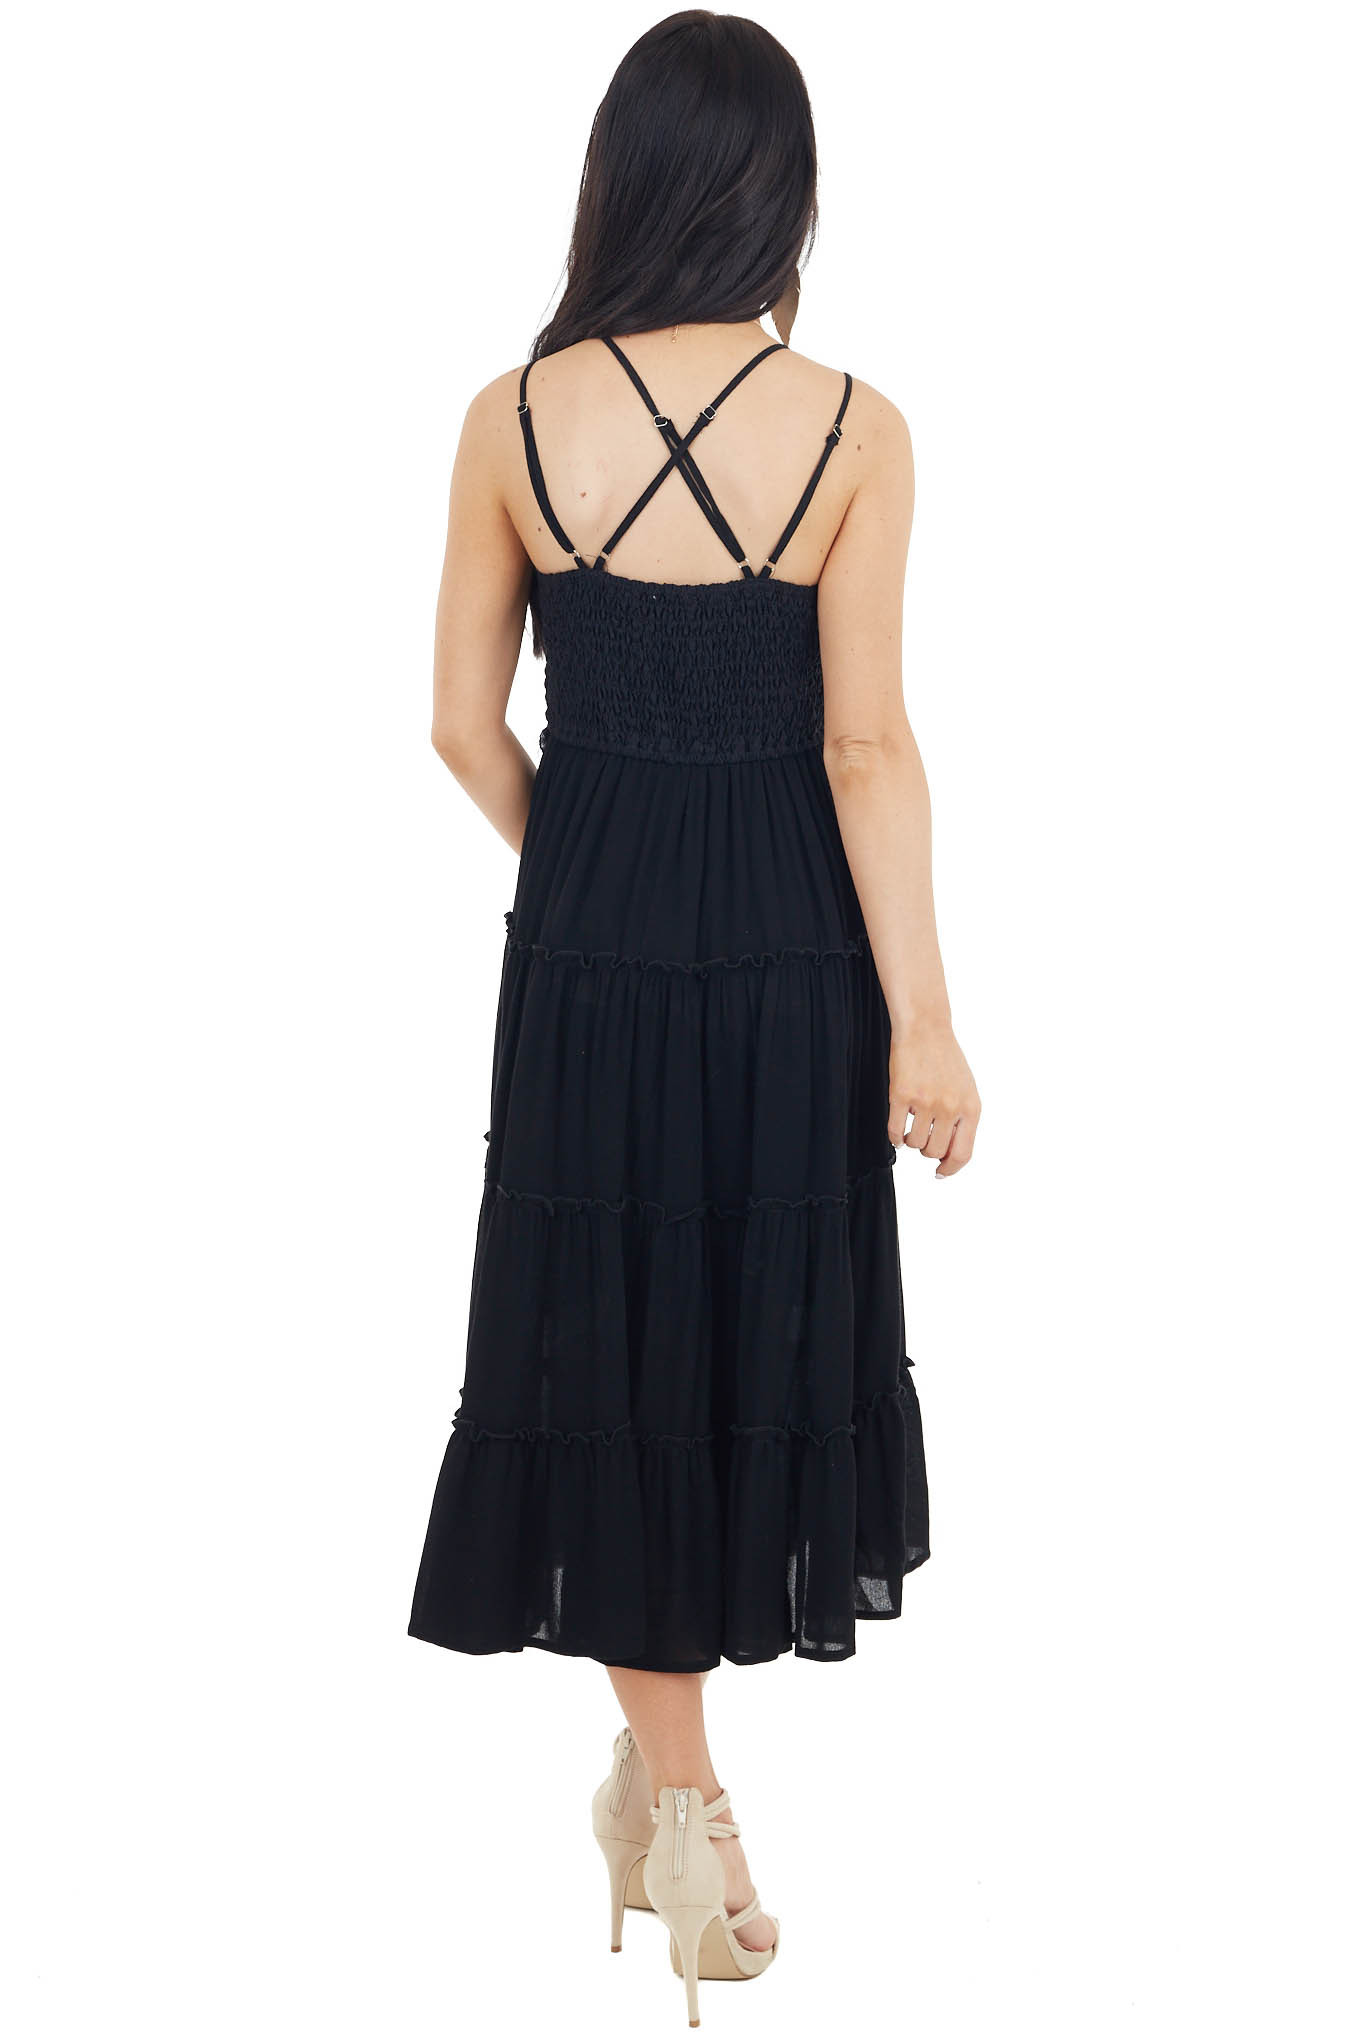 Black Double Spaghetti Strap Midi Dress with Lace Detail